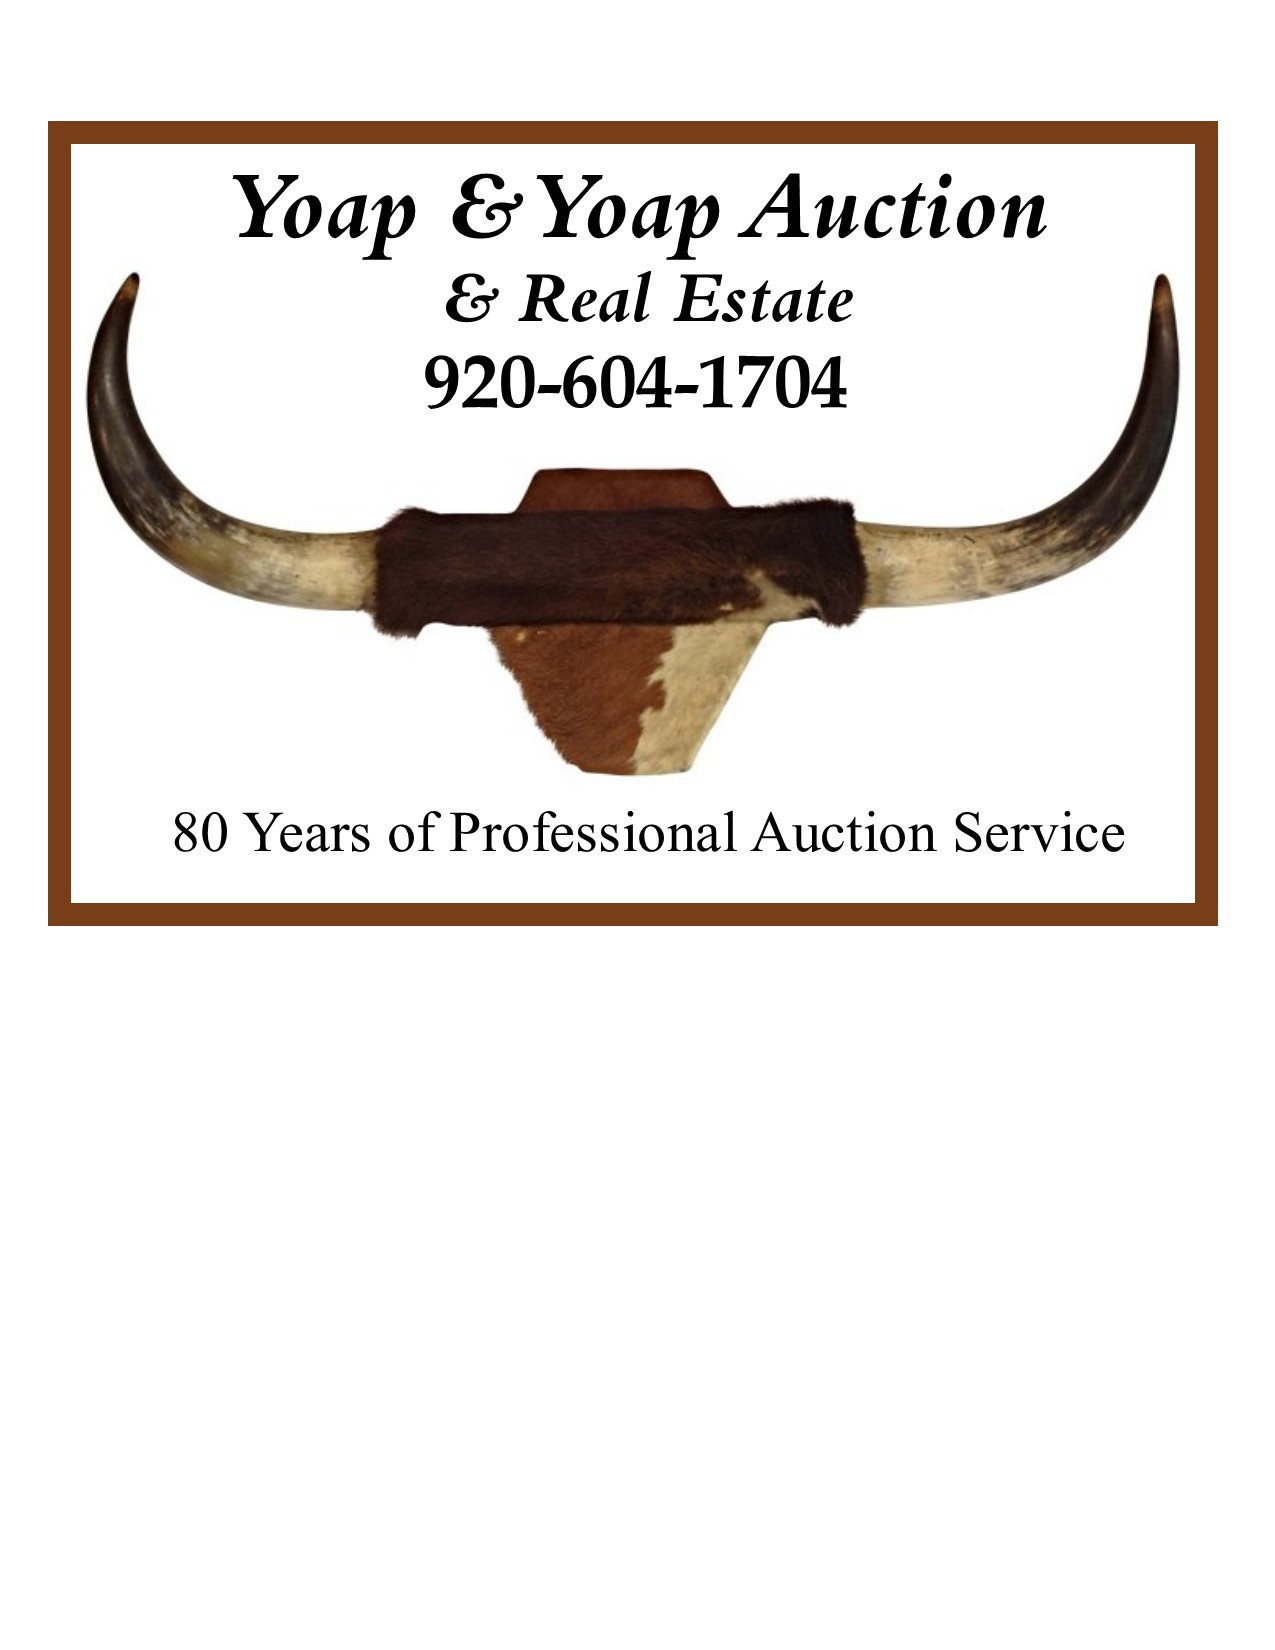 Yoap & Yoap Auction & Real Estate Logo